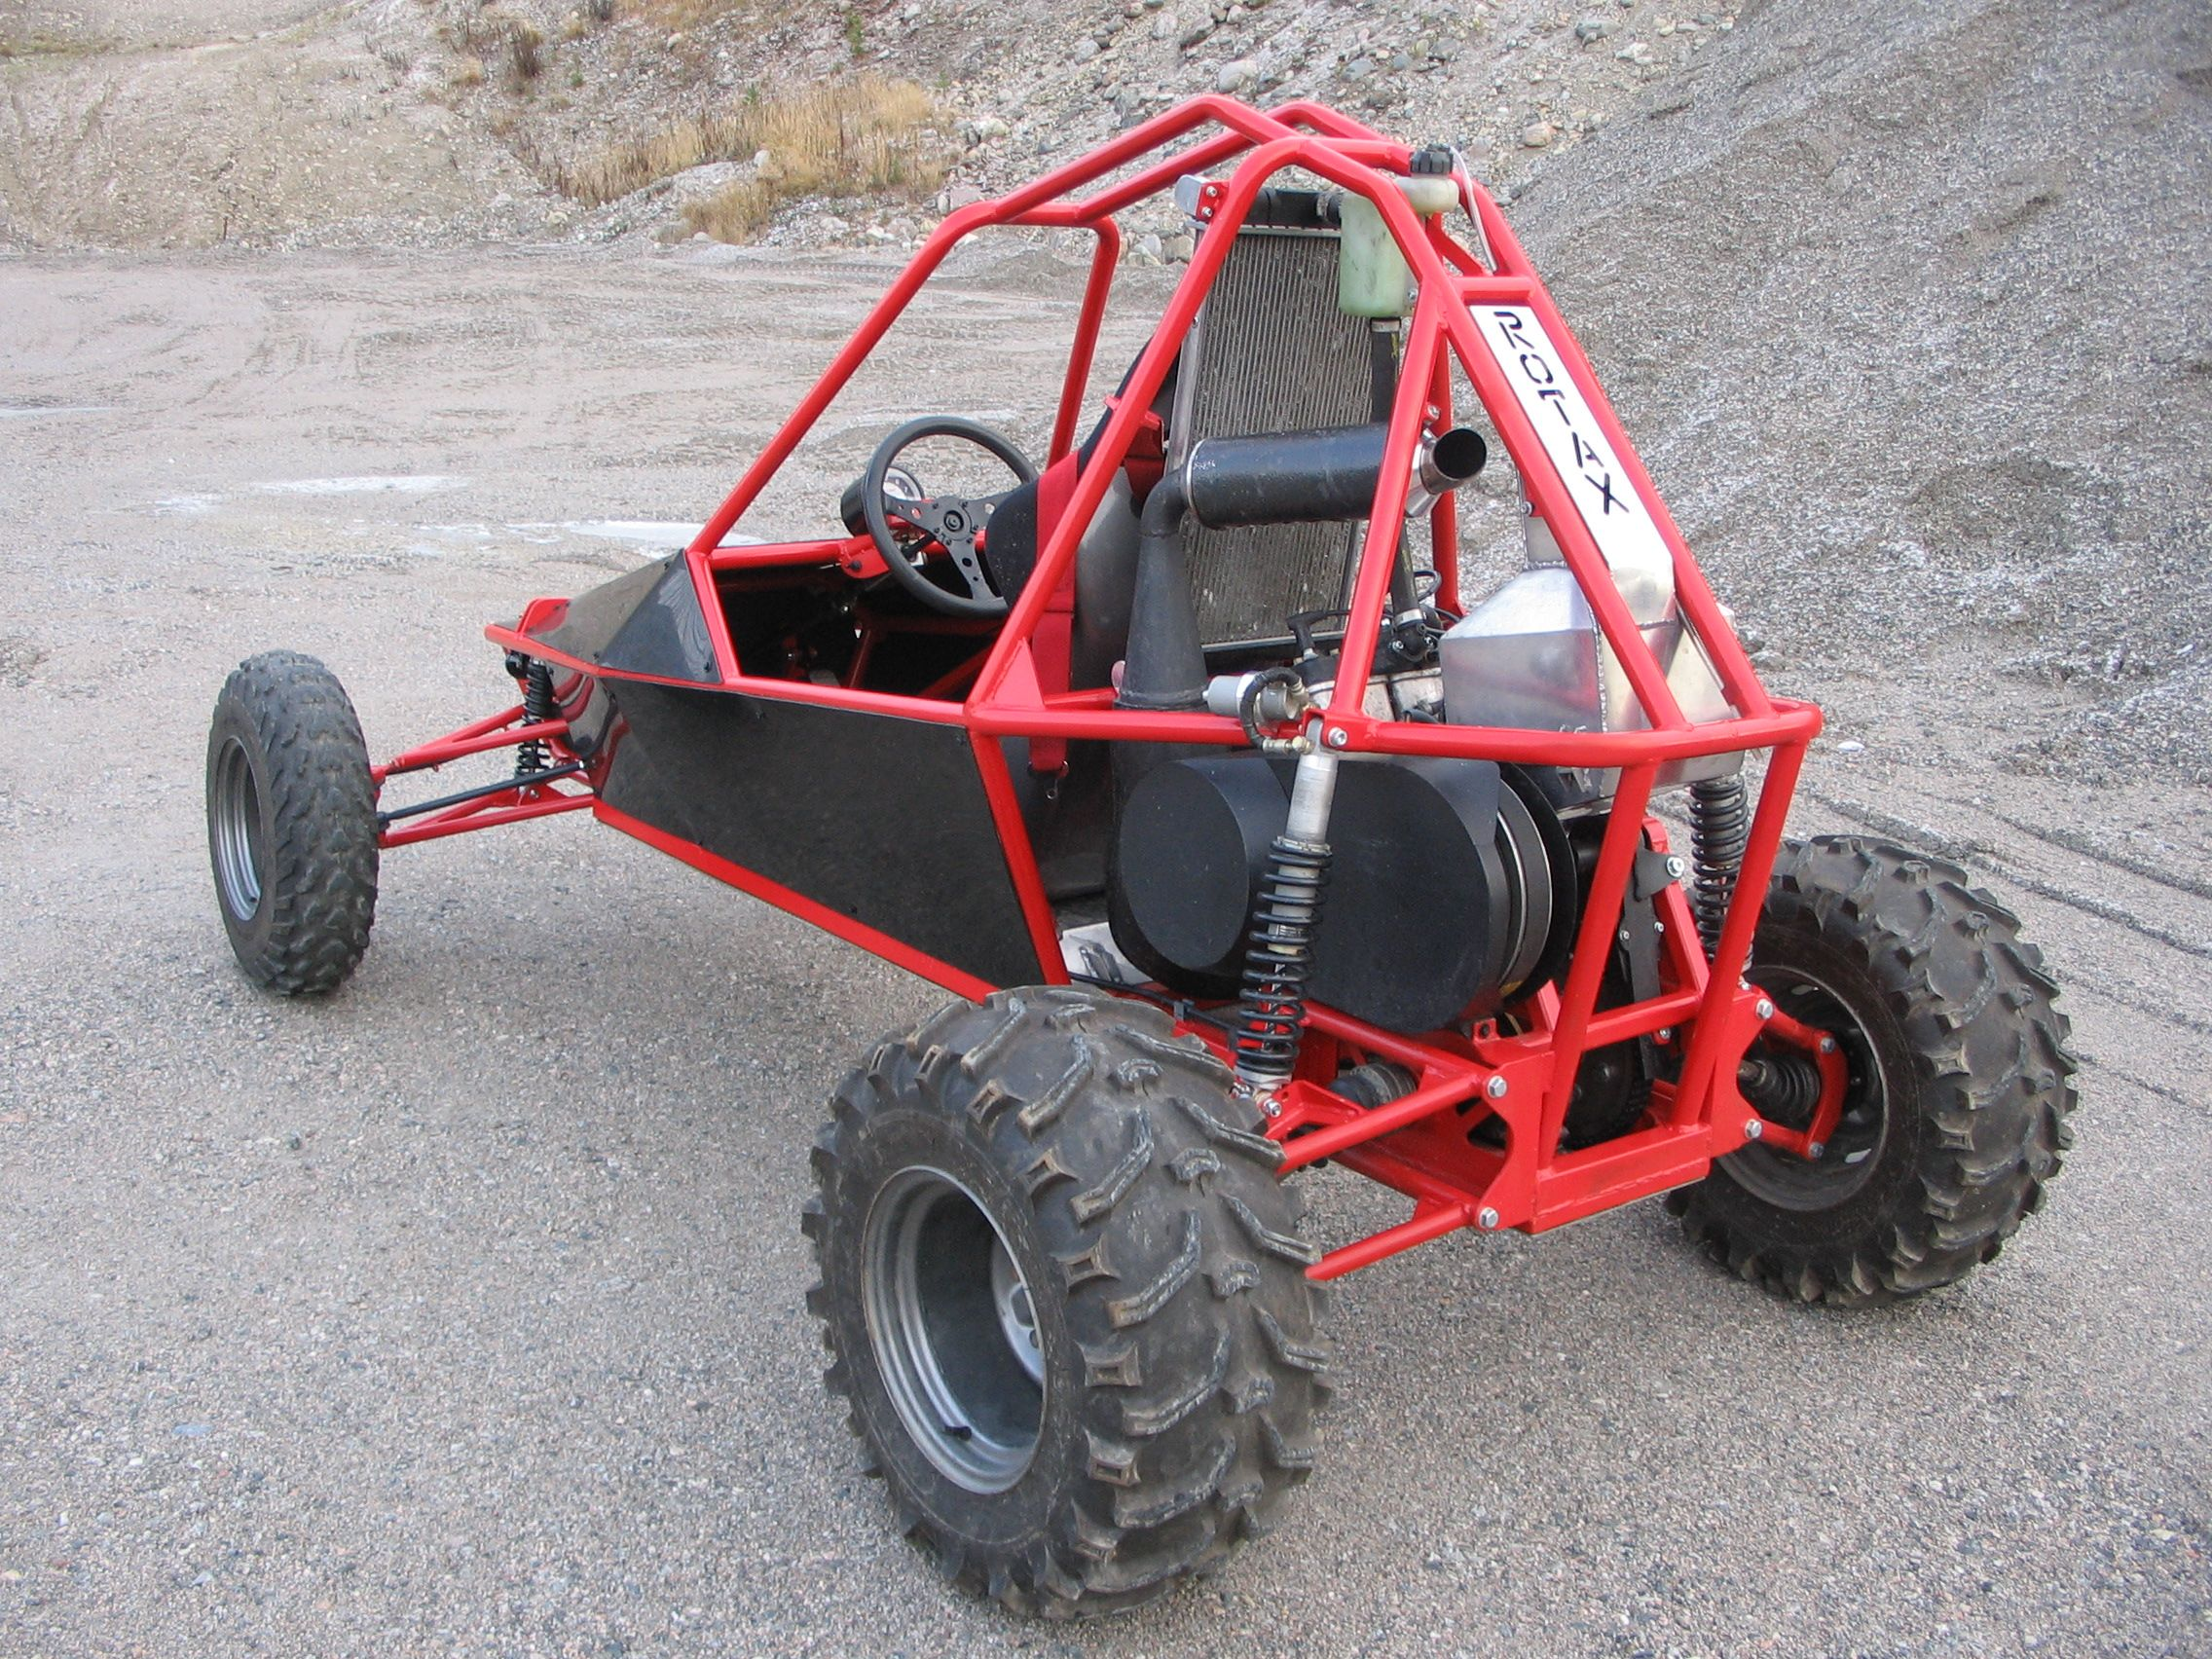 Kart Cross Buggy Build Pin By Enrique On Karting Go Kart Buggy Off Road Buggy